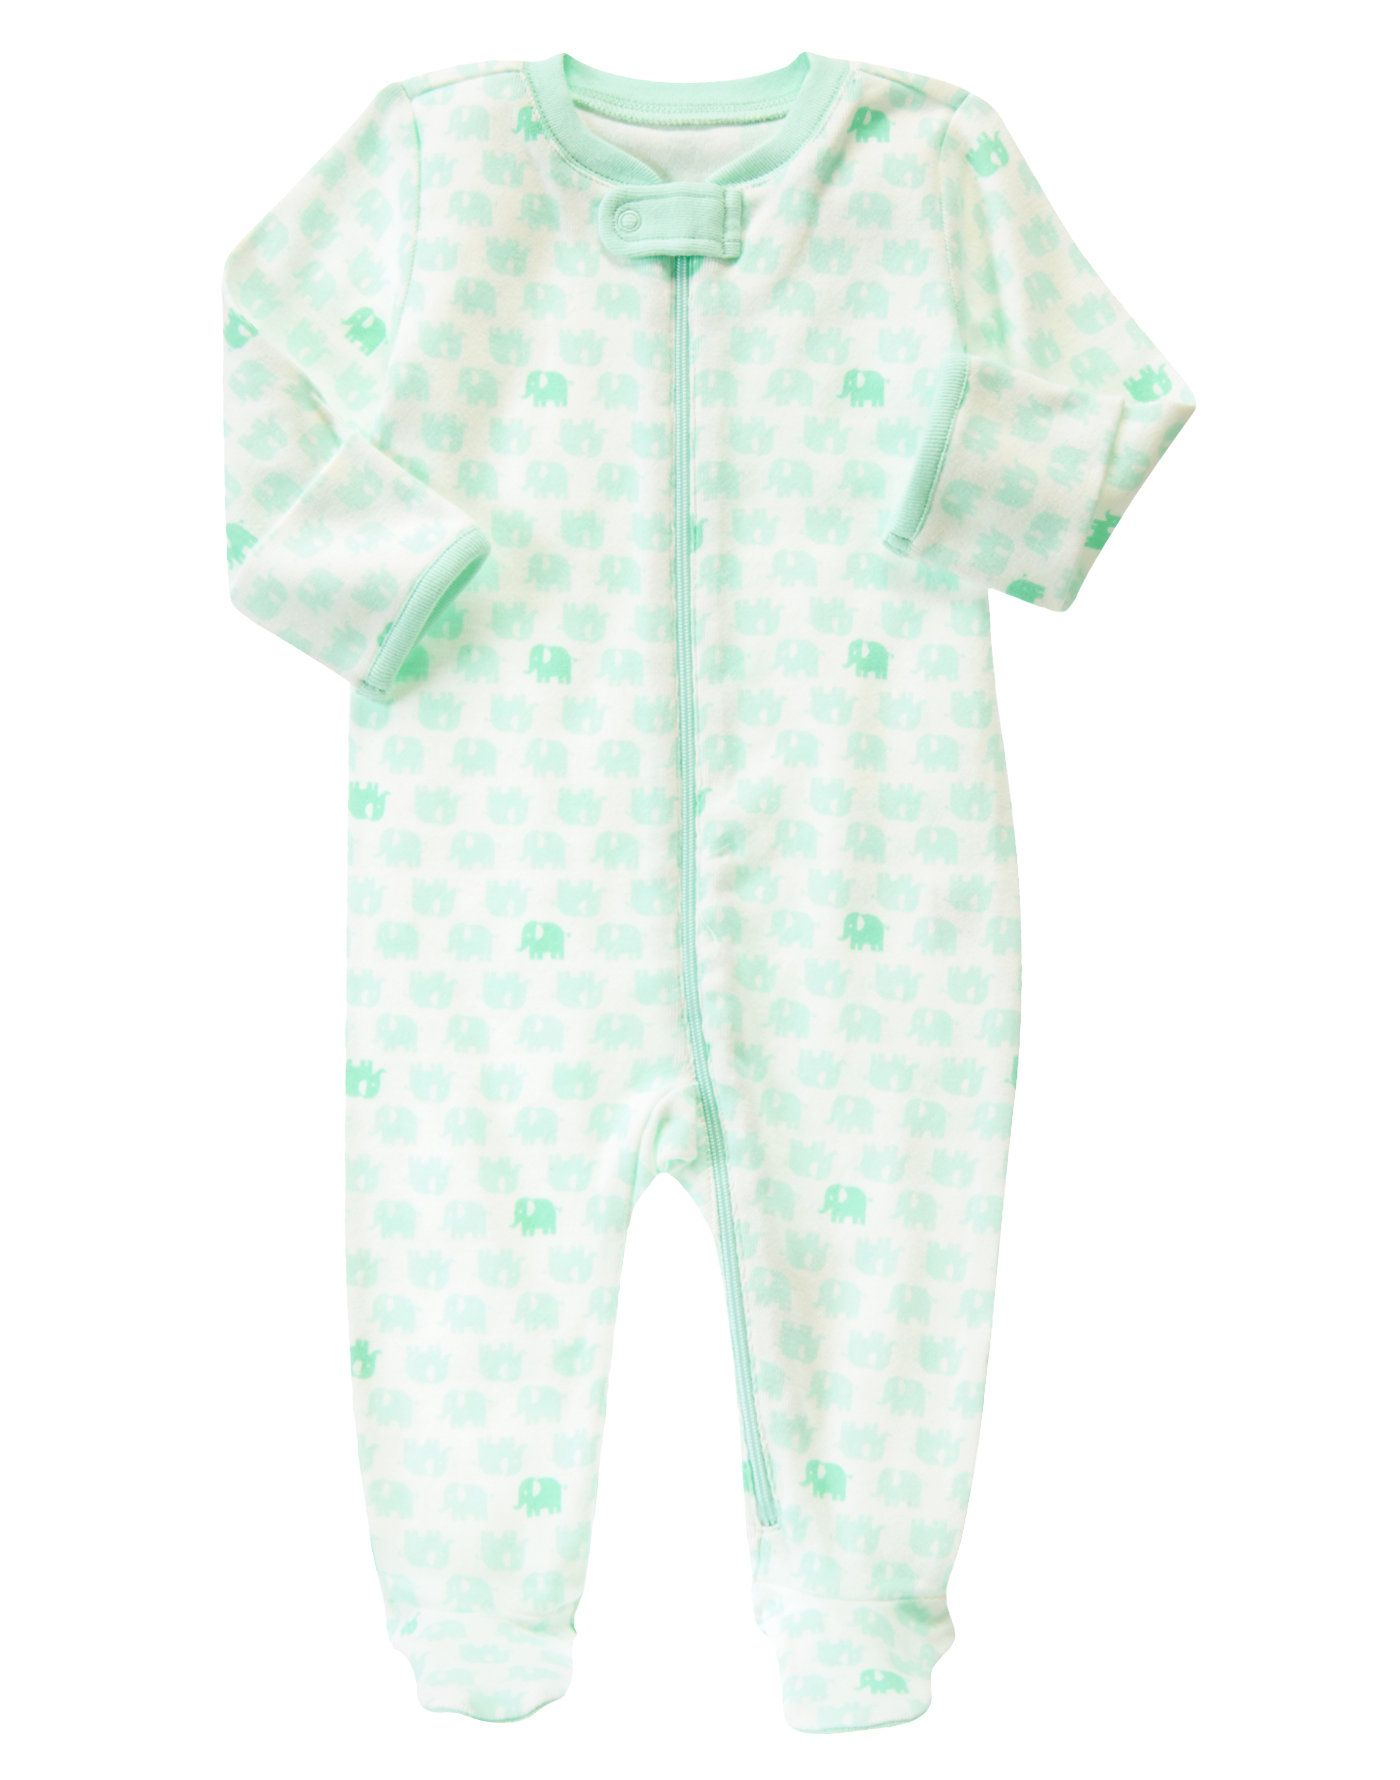 78b862d14327 Elephant Footed One-Piece at Gymboree Collection Name  Brand New ...